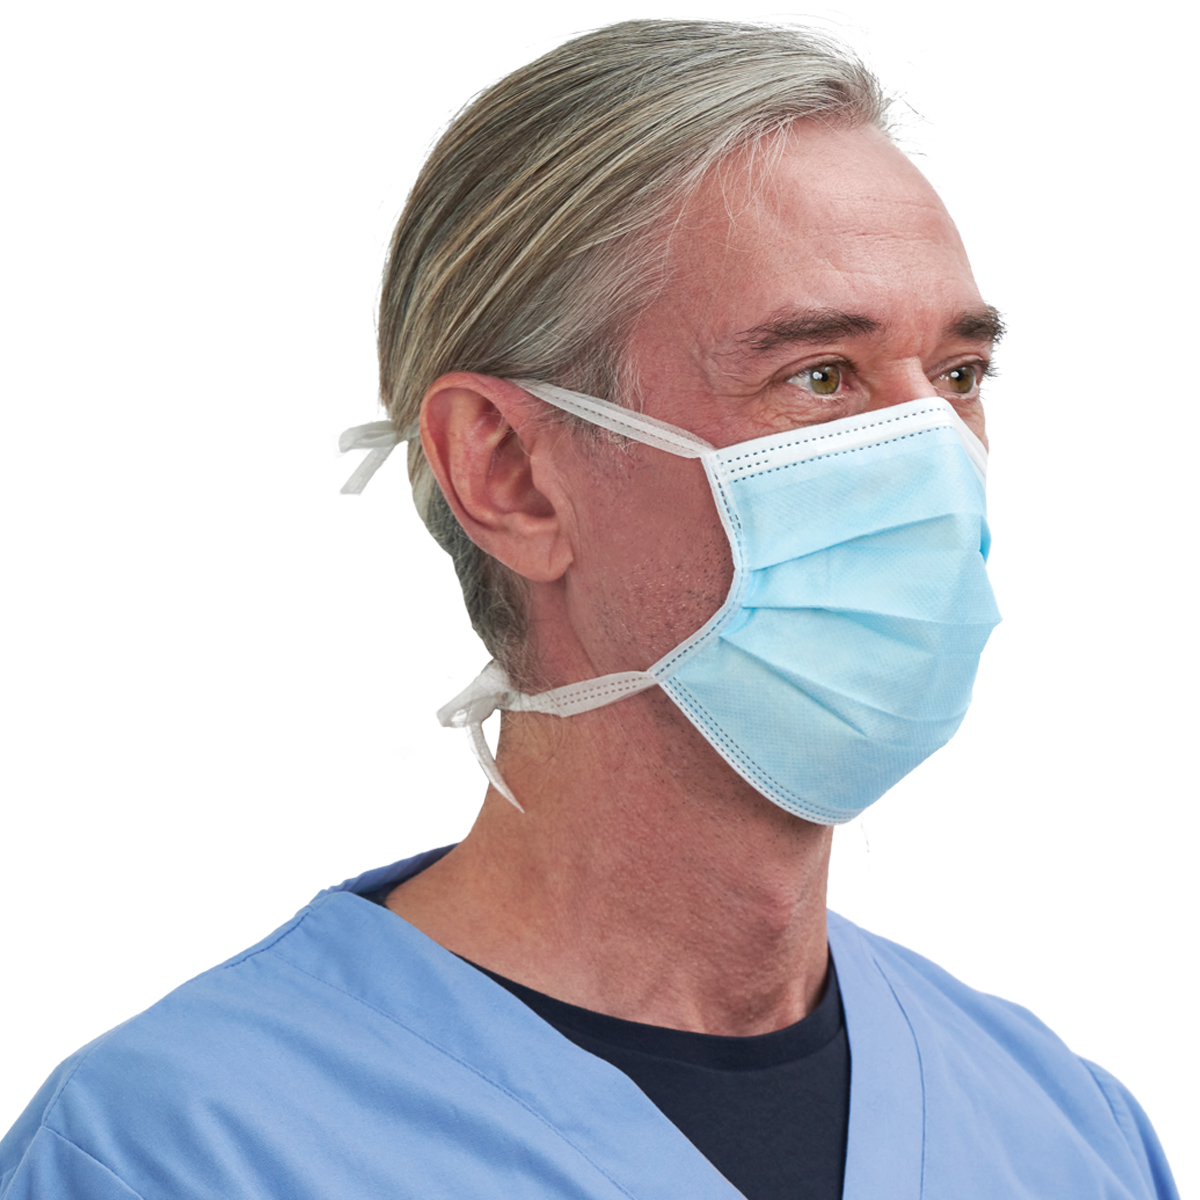 Surgical Face Mask, with Ties Image